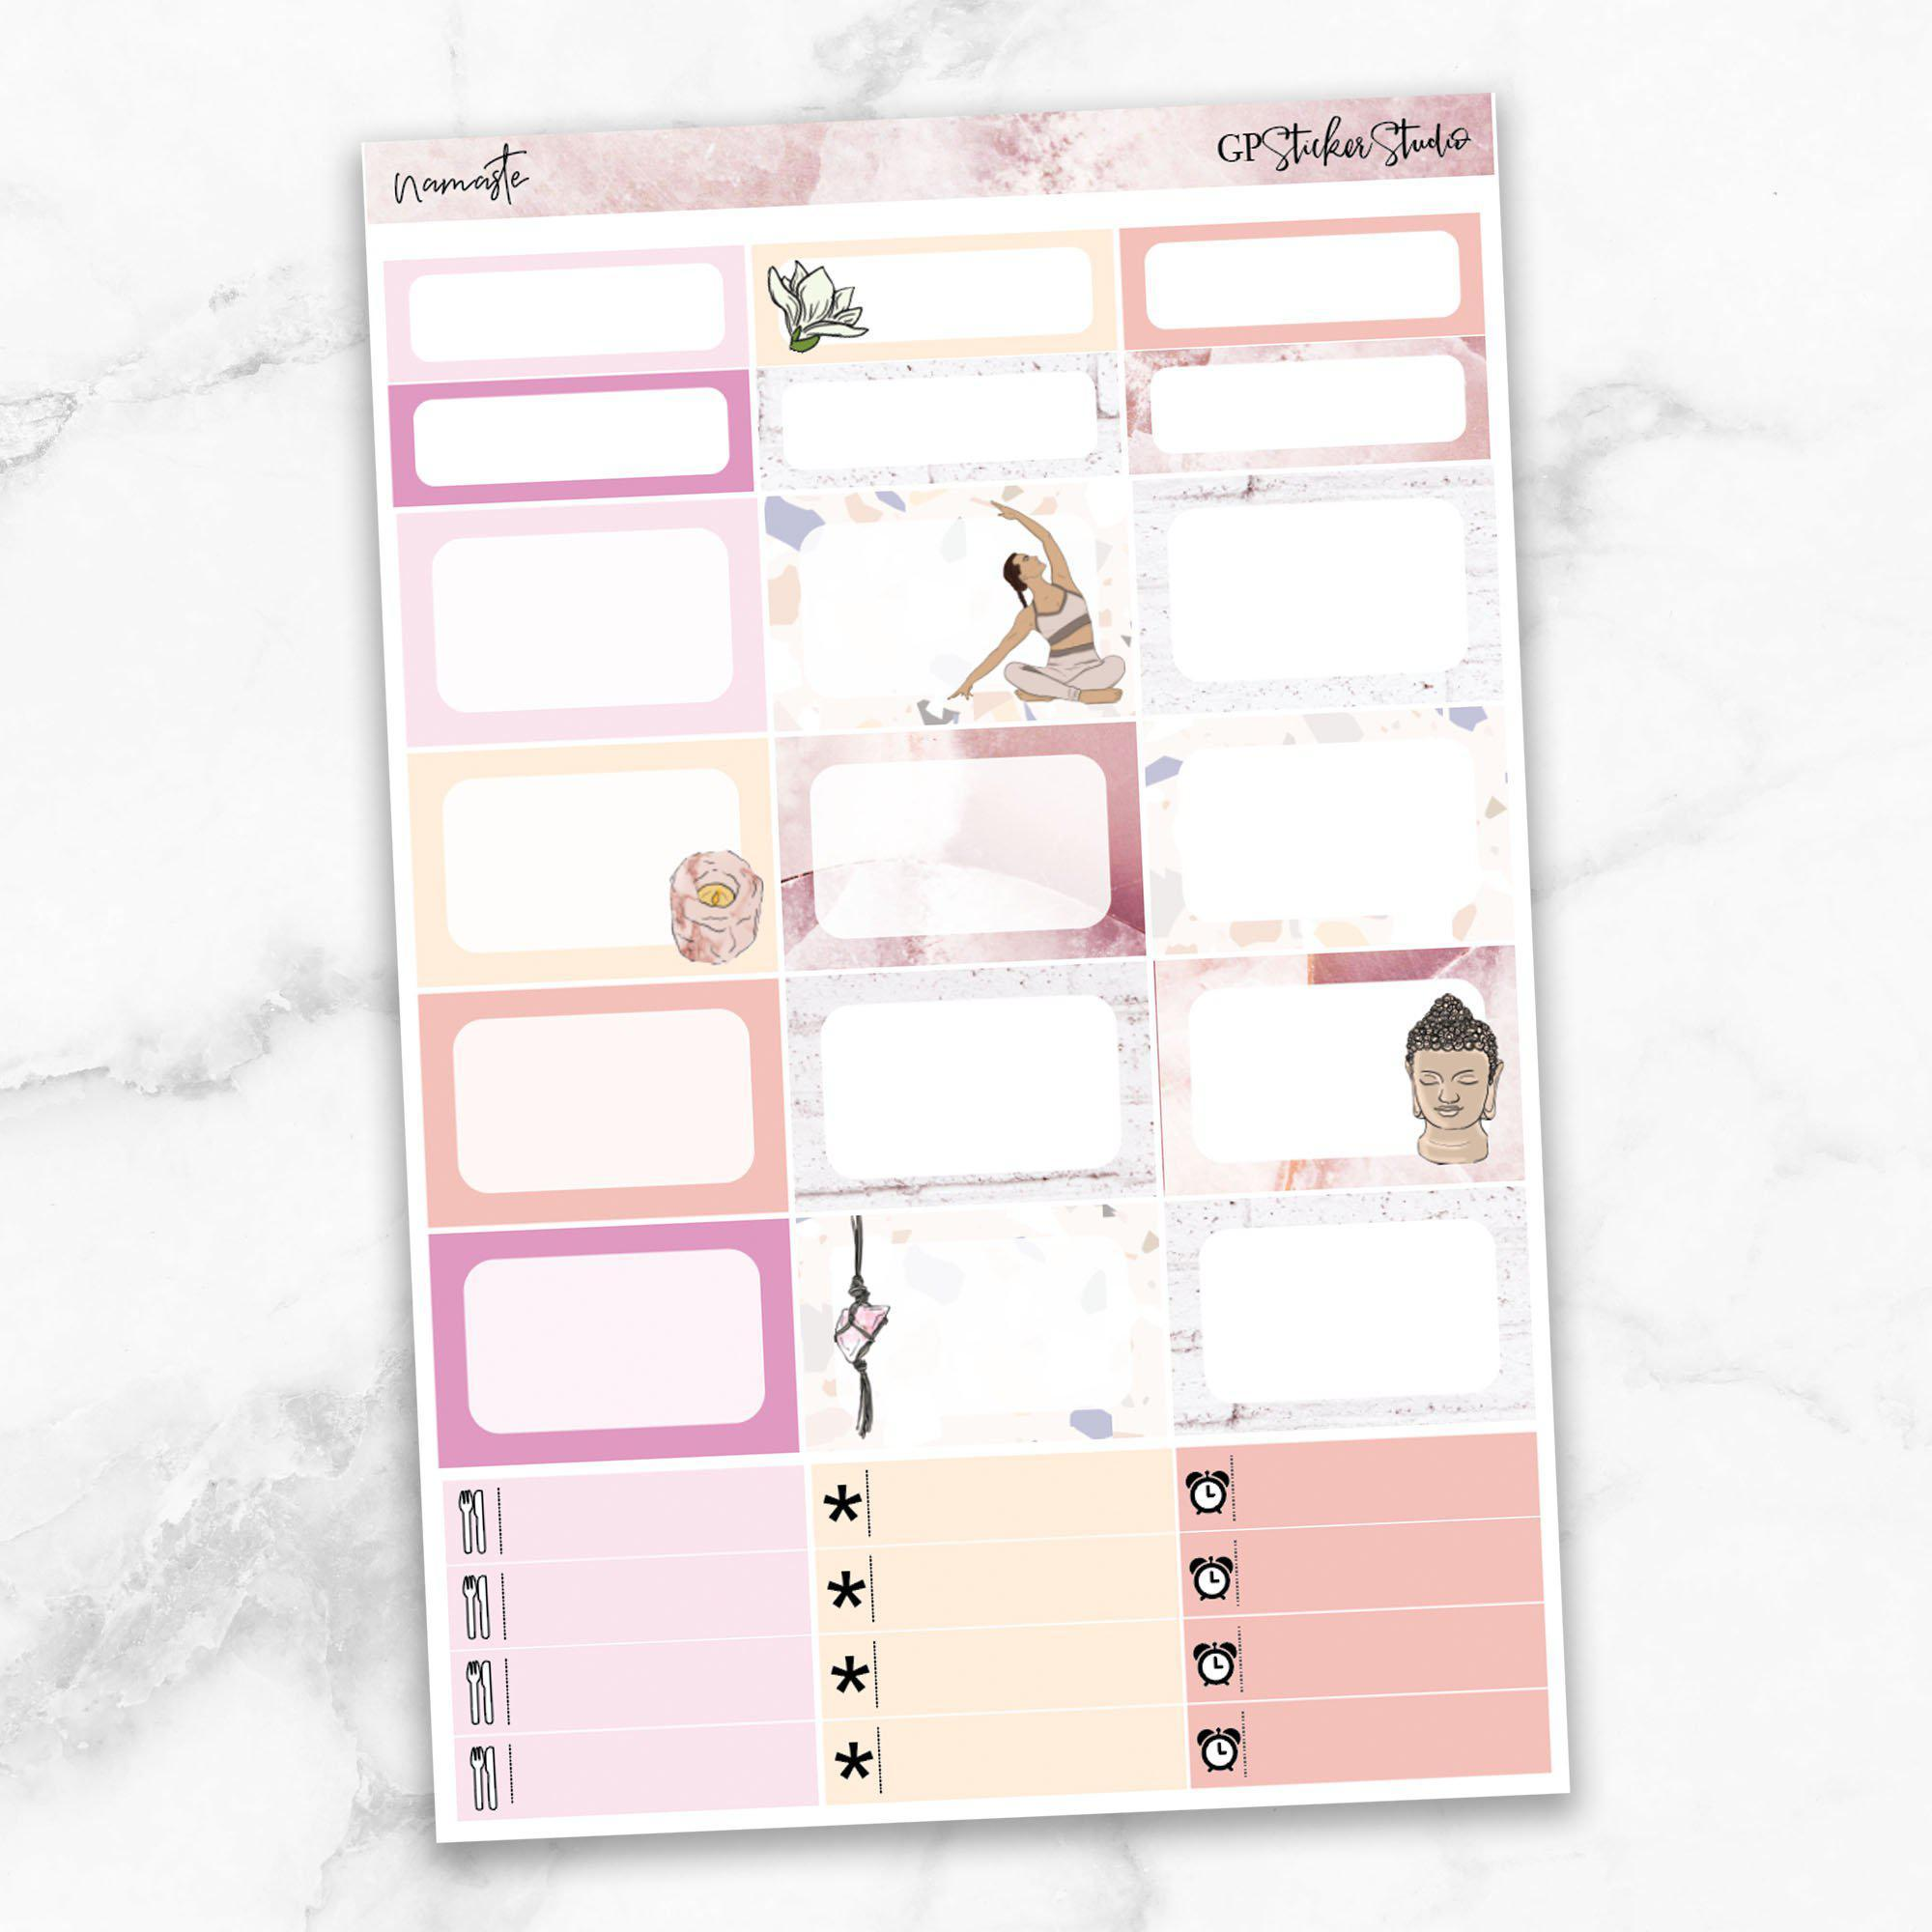 NAMASTE Half Boxes Planner Stickers-The GP Studio